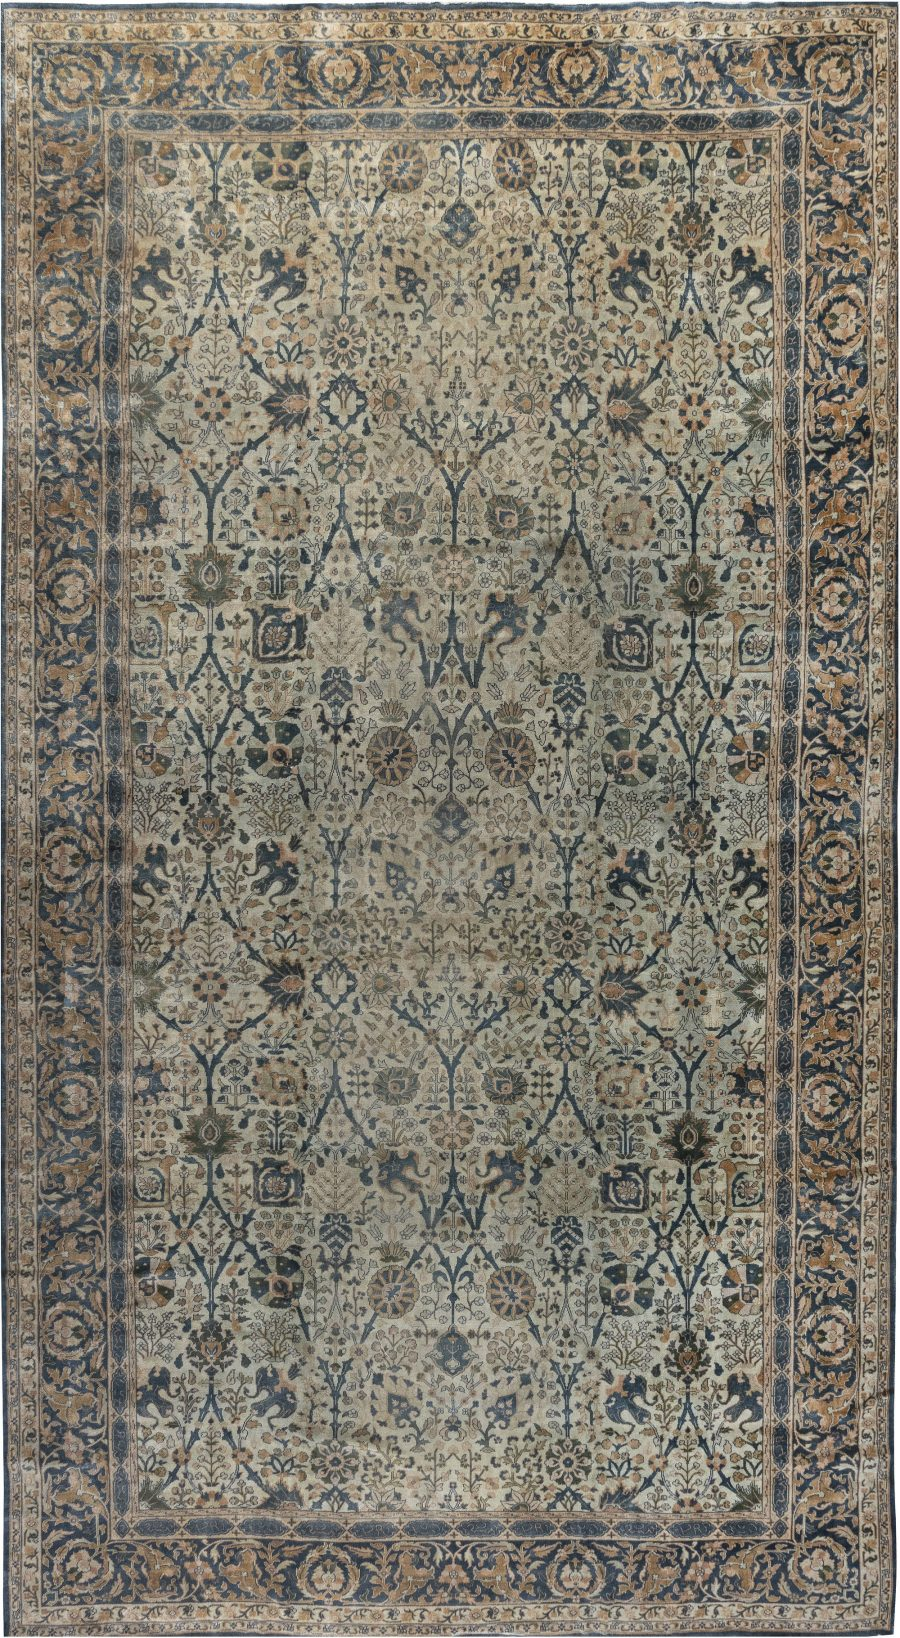 Antique Indian Blue And Beige Handwoven Wool Rug Bb7243 By Dlb In 2020 Indian Rugs Antique Indian Rug Antique Rugs